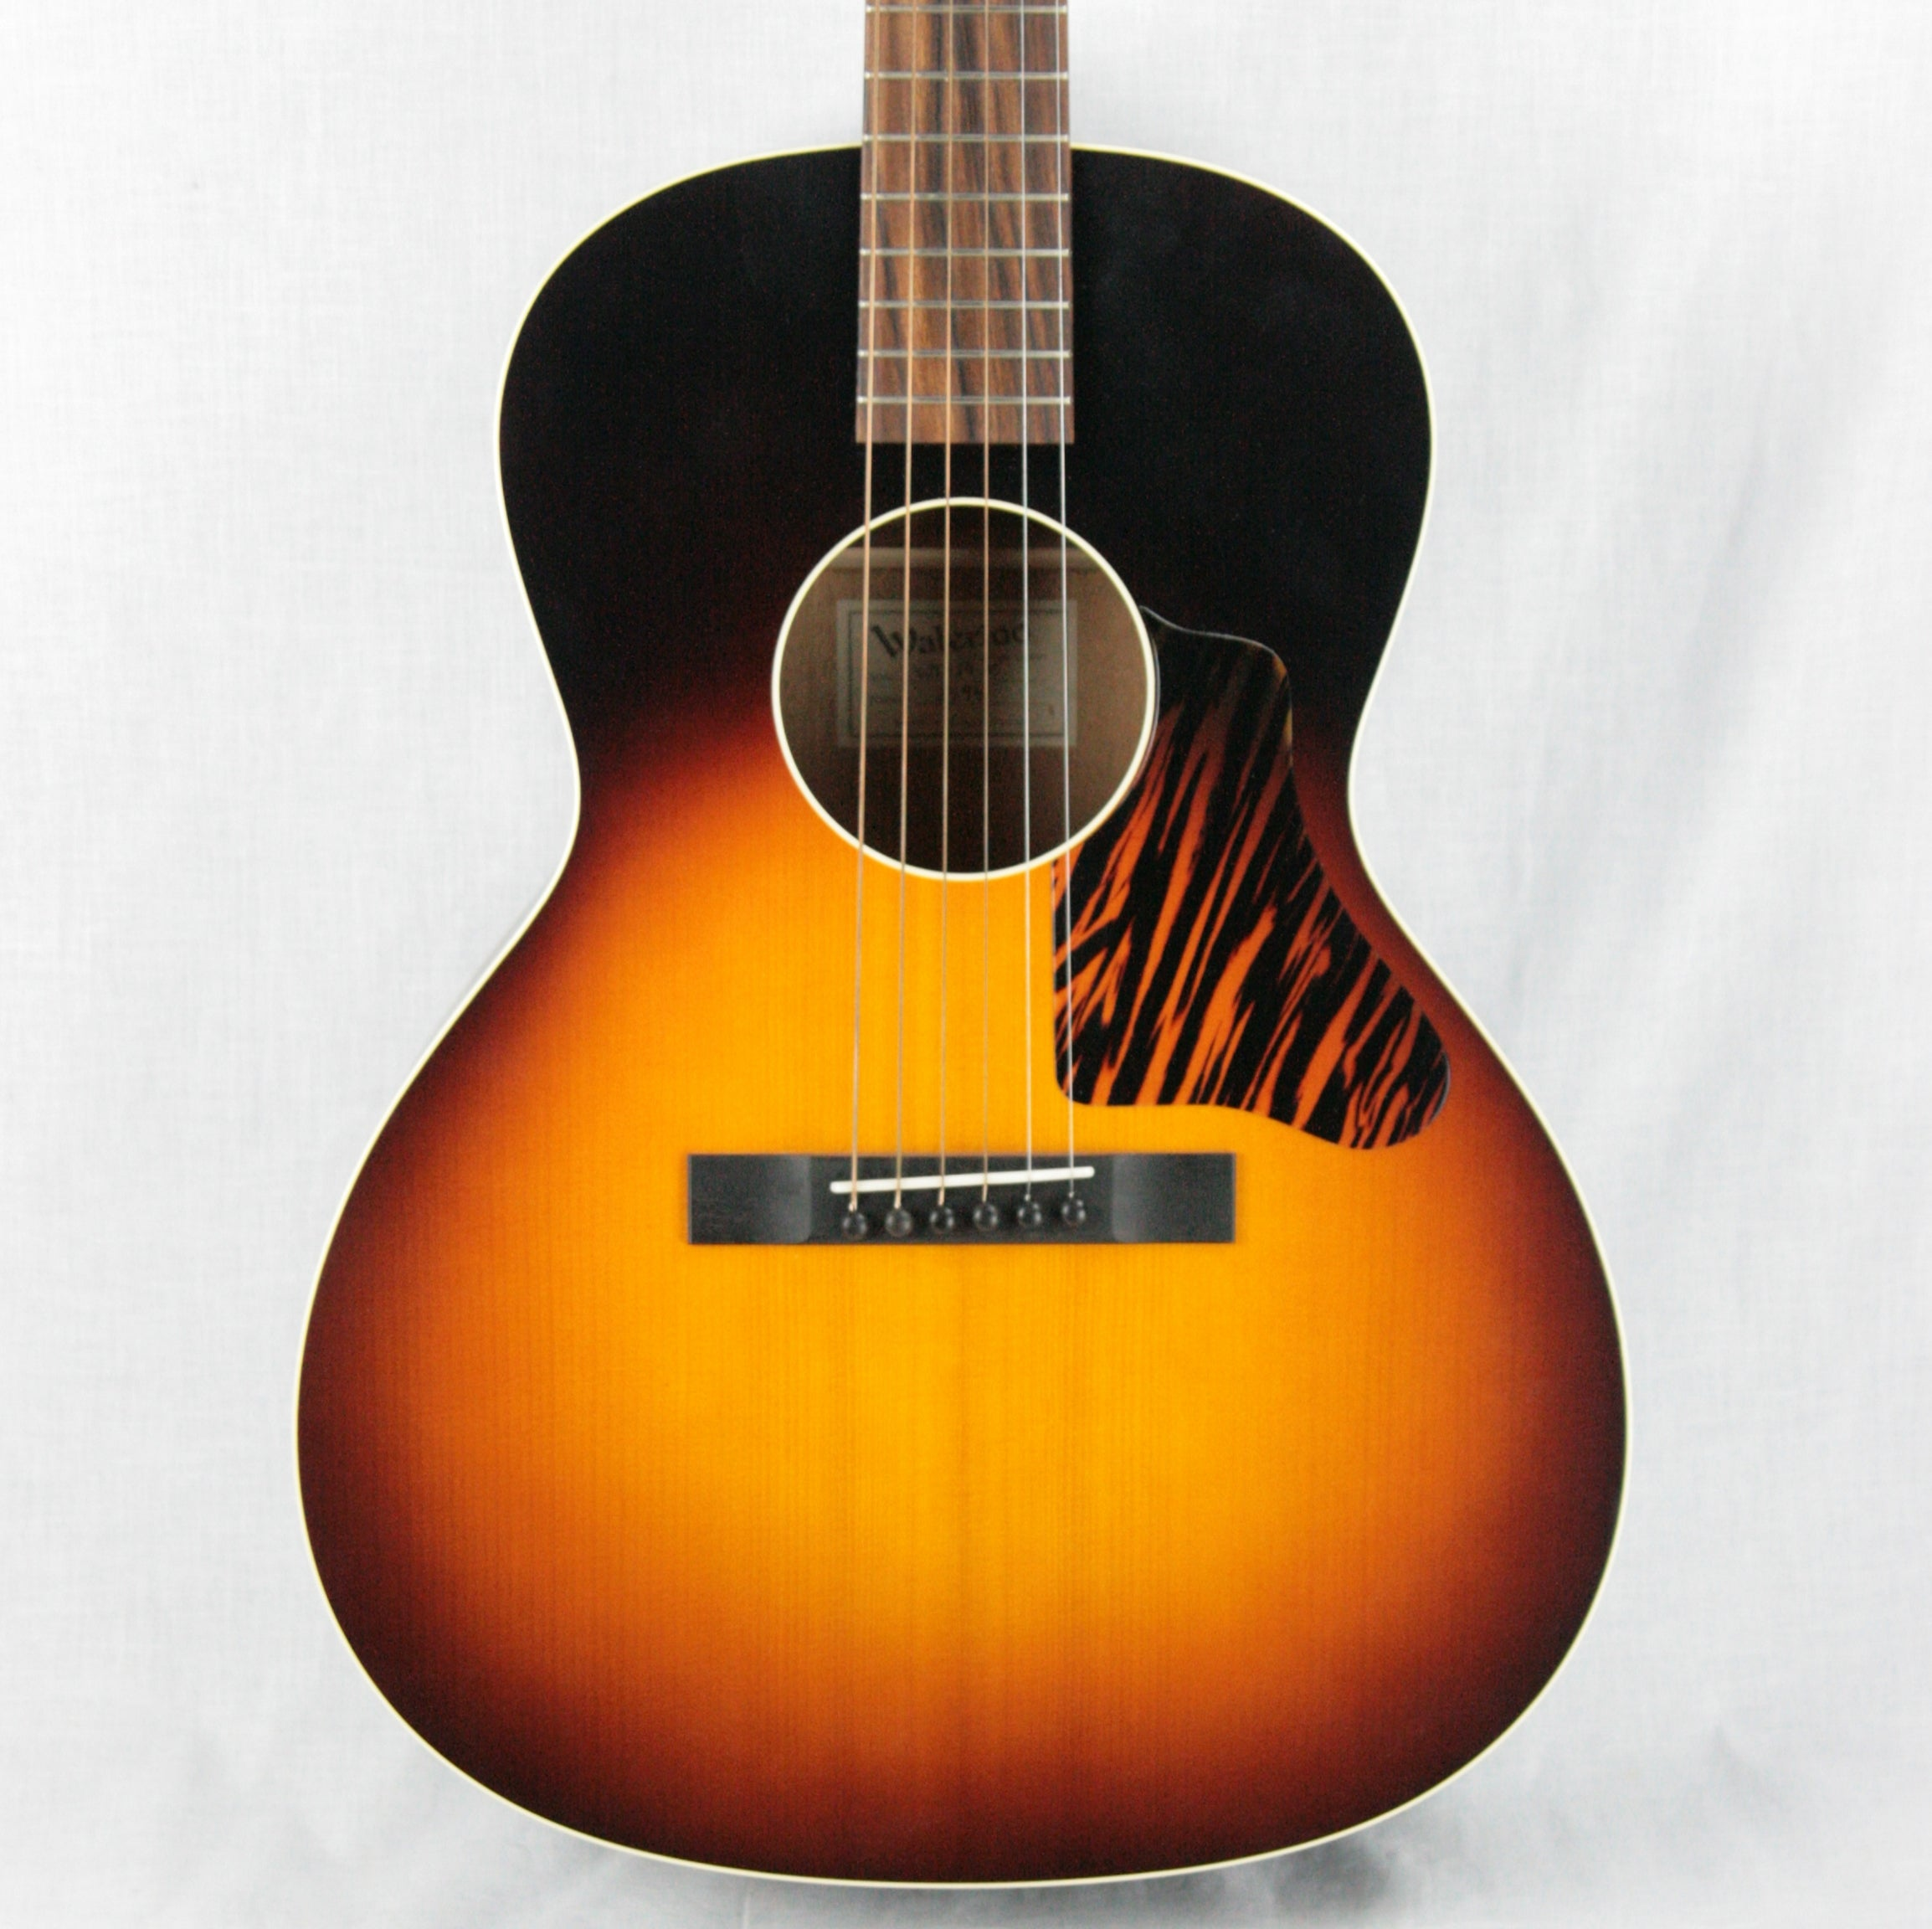 MINTY Waterloo WL-14 X by Collings! X-Braced! Spruce Top/Mahogany Back/Sides!